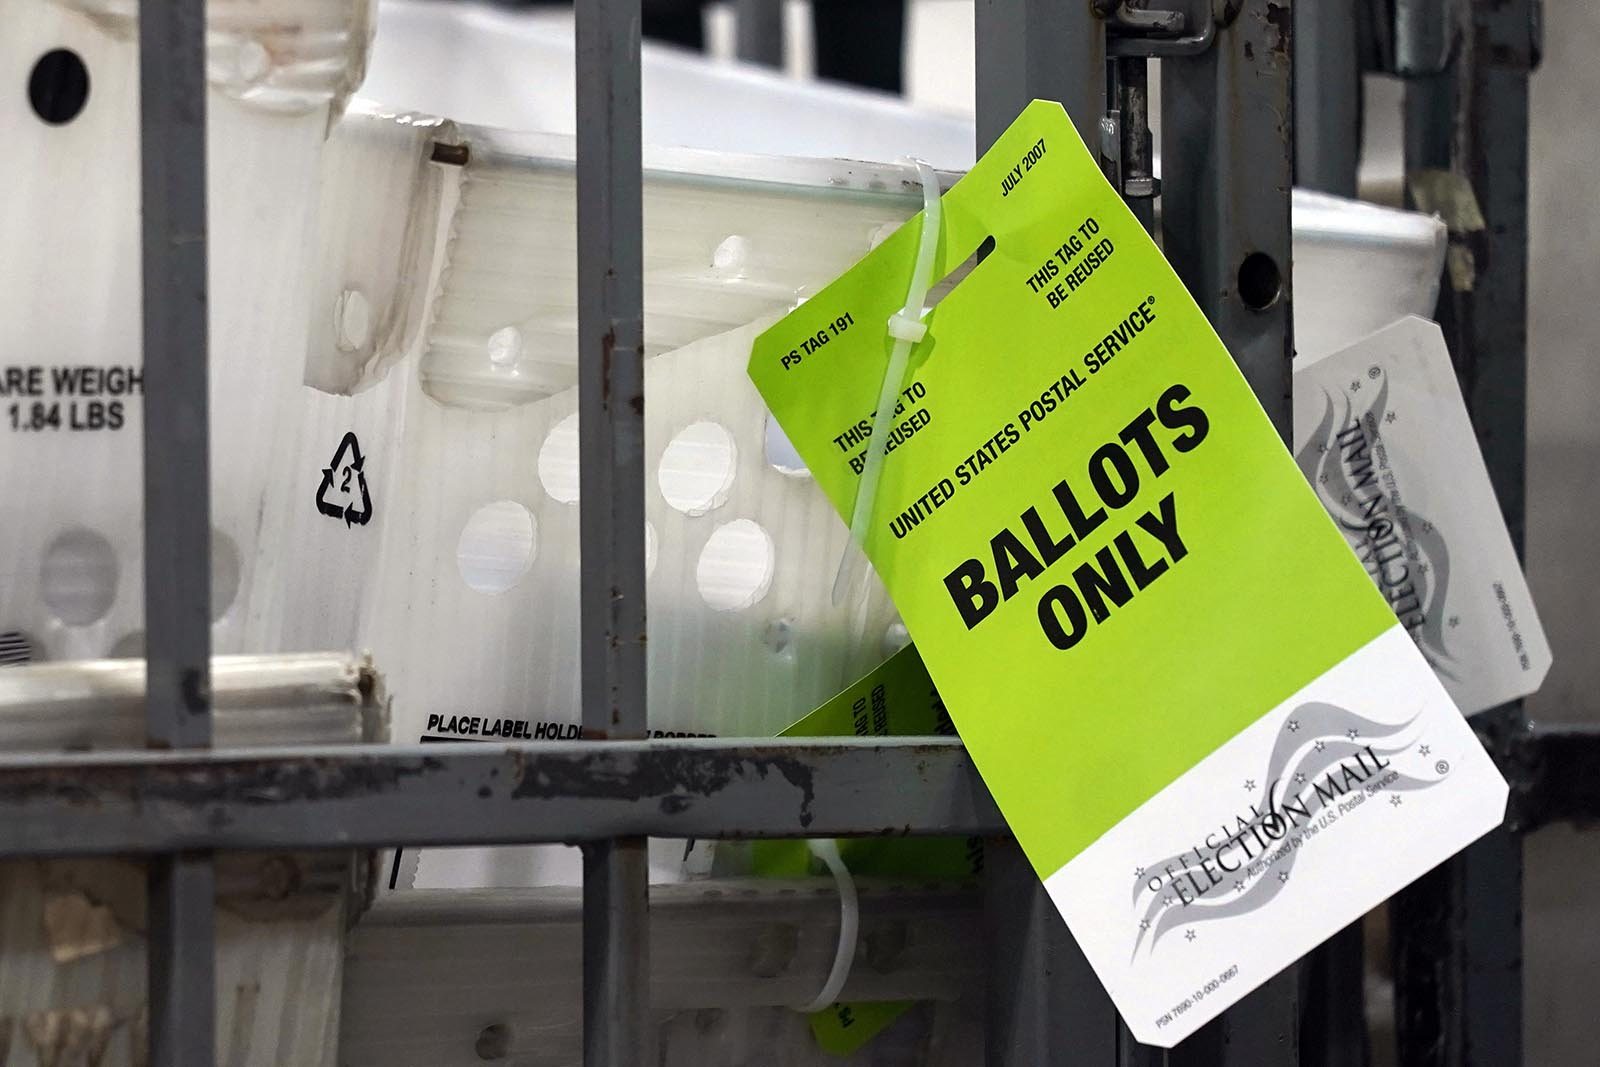 Vote-by-mail ballots sit ready for transport to a local U.S. Postal Service office at the Broward Supervisor of Elections Office, on Thursday, September 24, in Lauderhill, Florida.